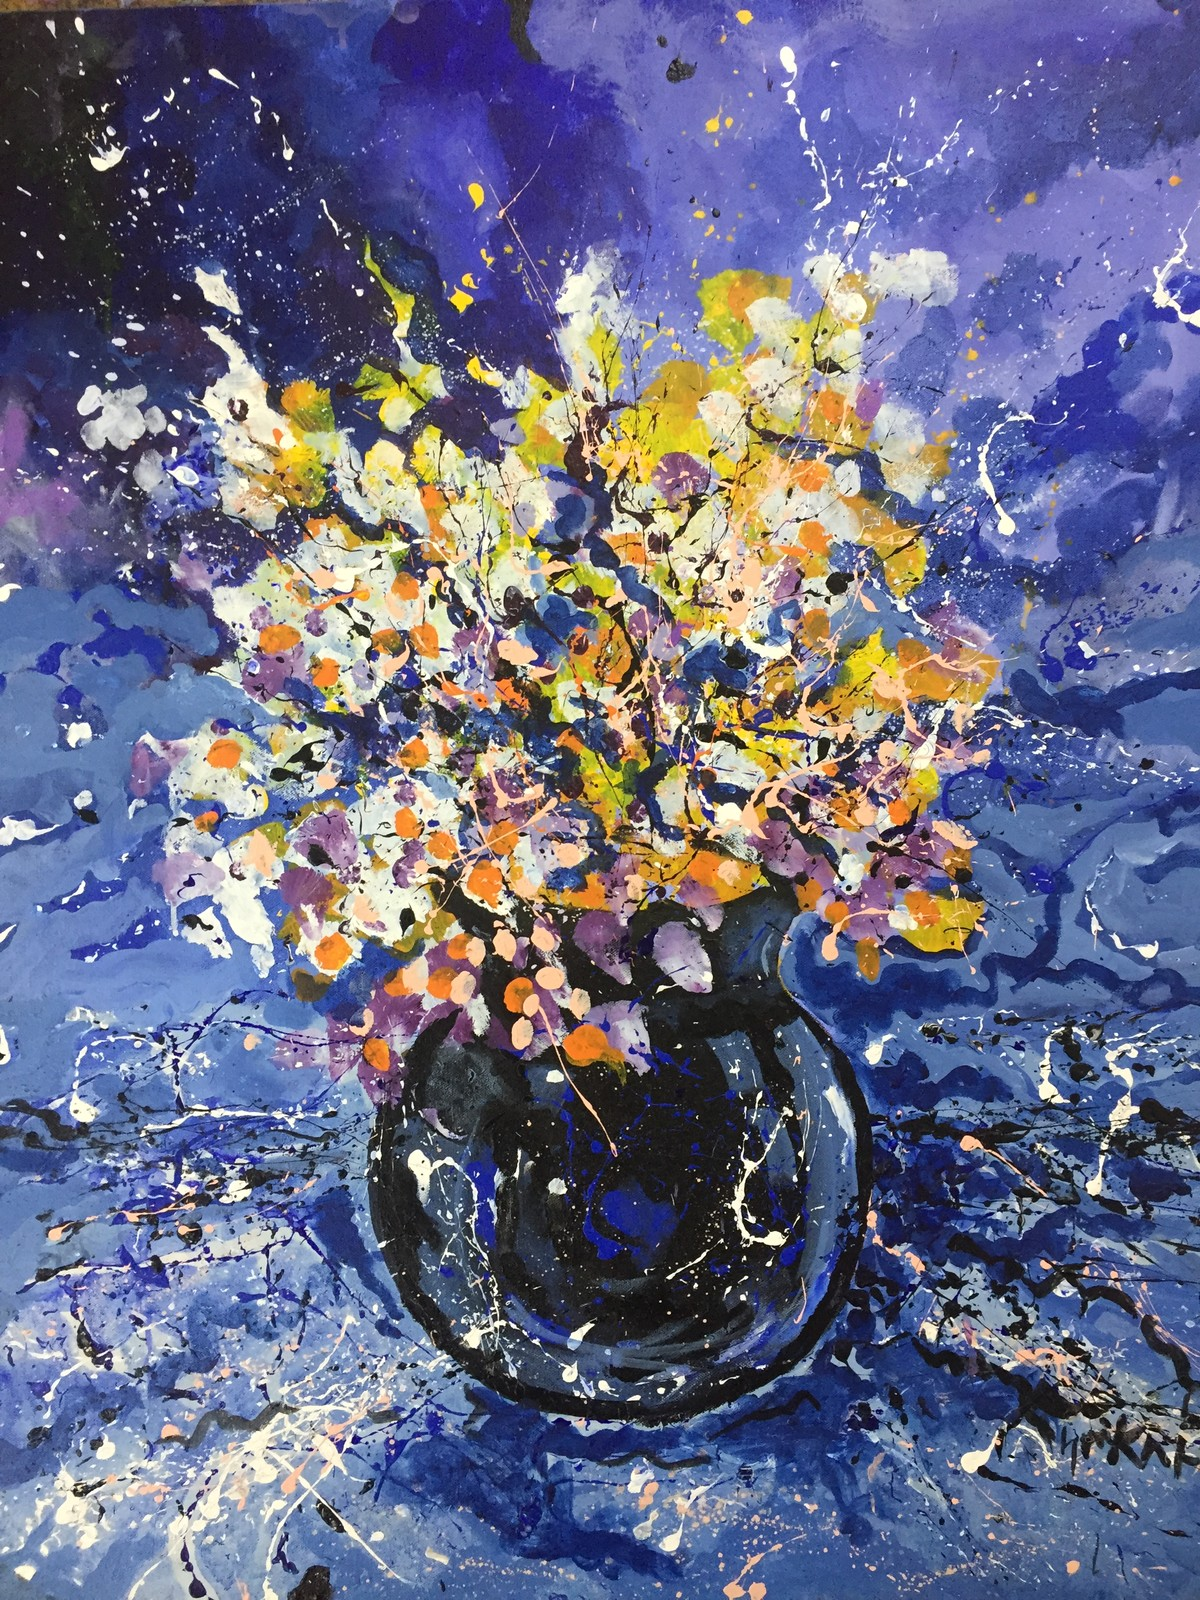 Flower Vase Blue by Saikat Chakraborty, Abstract Painting, Acrylic on Canvas, Navy color